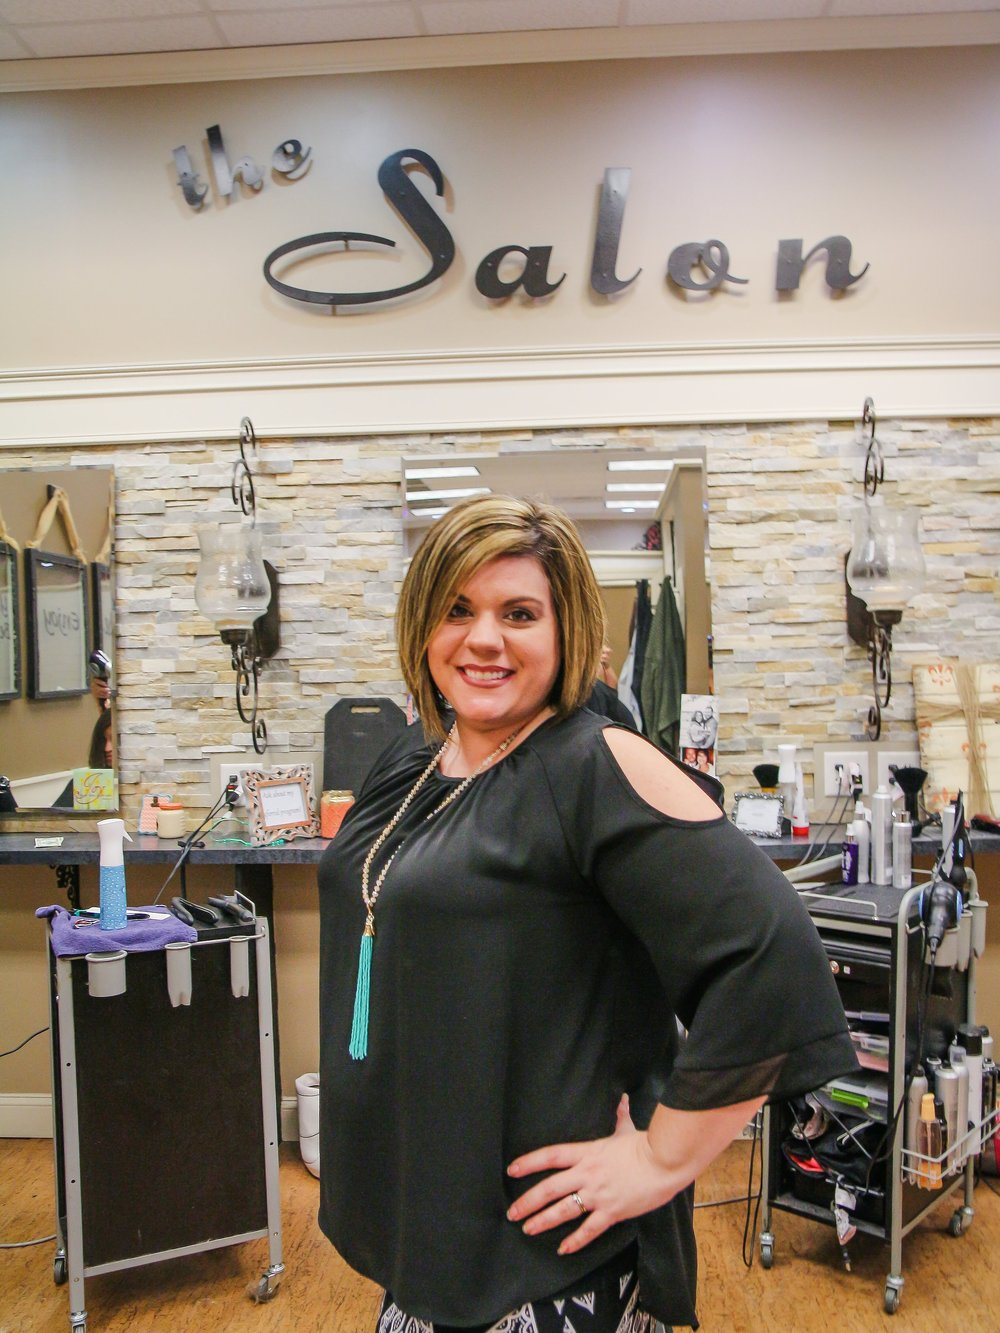 Mary - Stylist, Colorist  Location : Alps Village Shopping Center  Work Schedule : Tues, Wed, Thurs, Fri